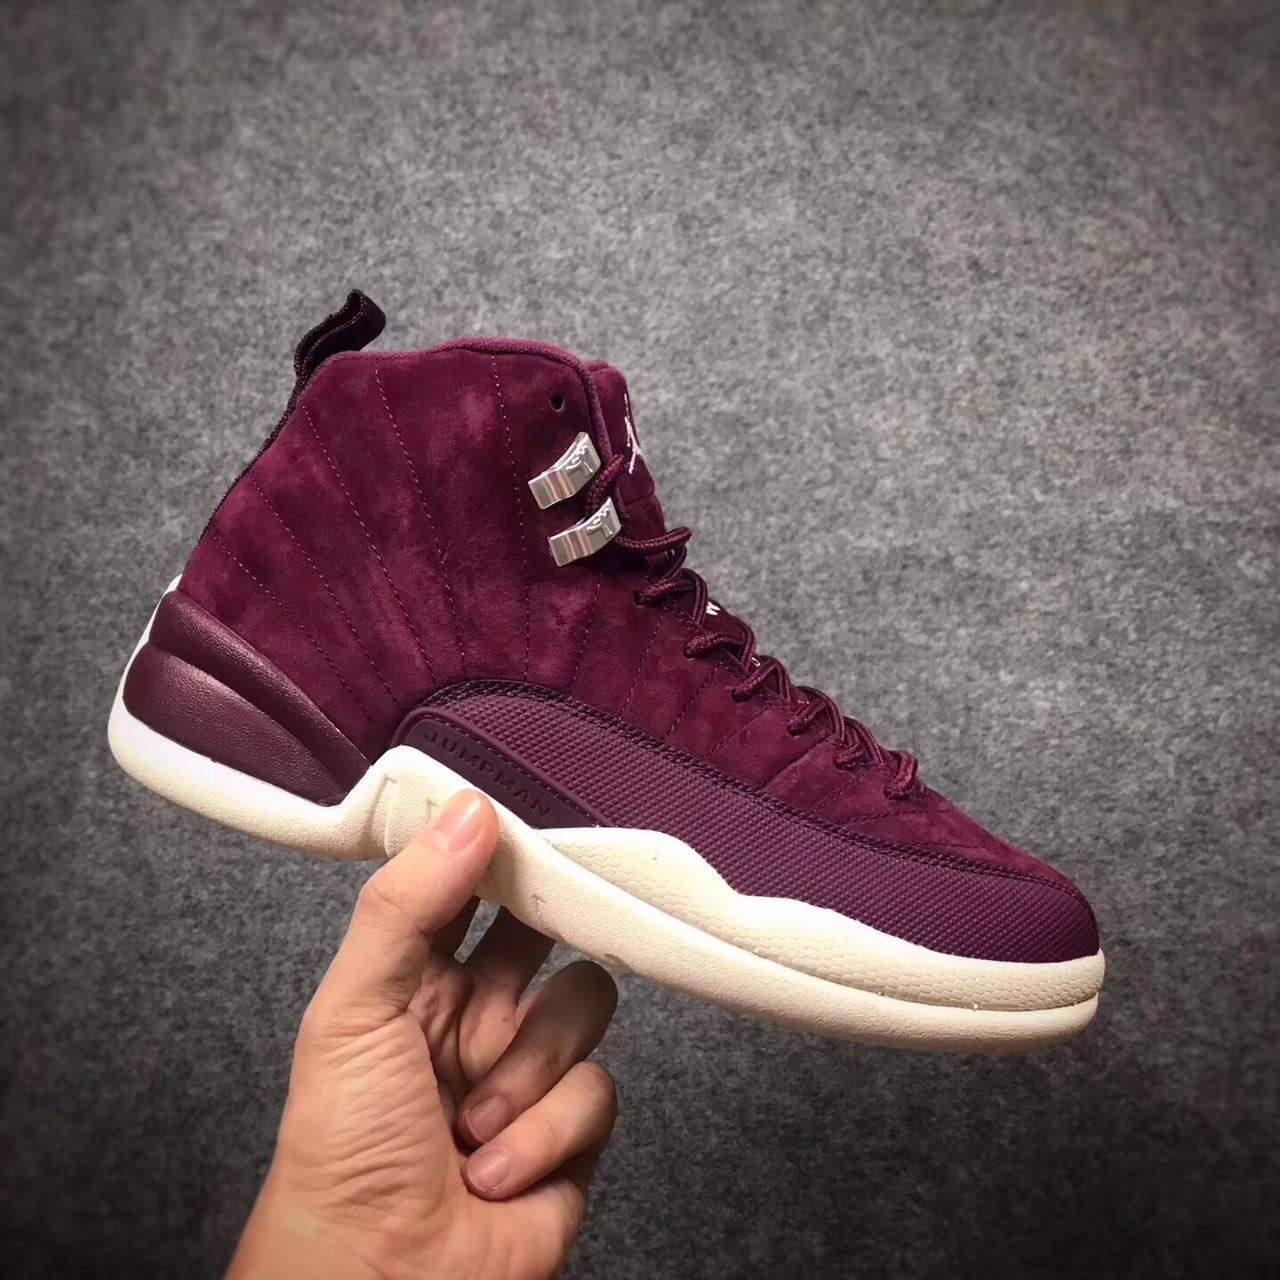 2017 Jordan 12 Bordeaux Wine Red Shoes